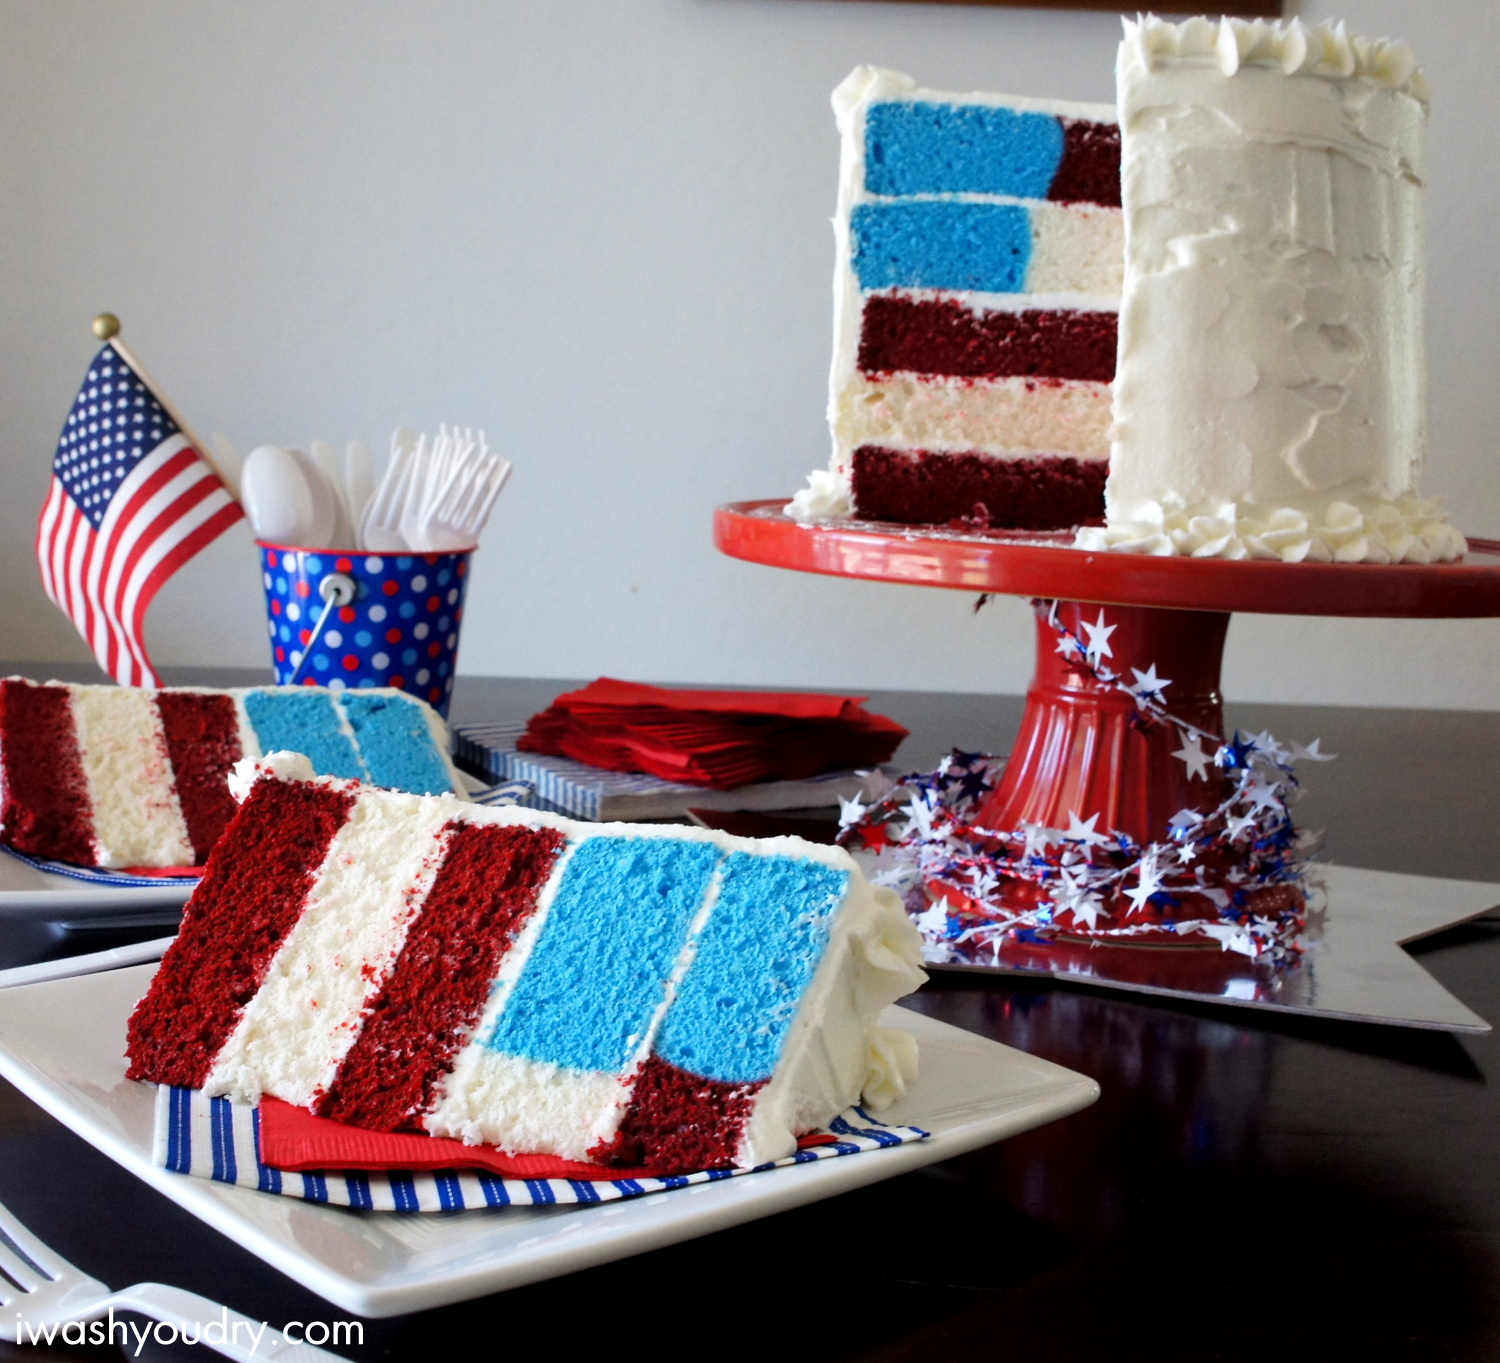 Patriotic All American Flag Cake - I Wash... You Dry